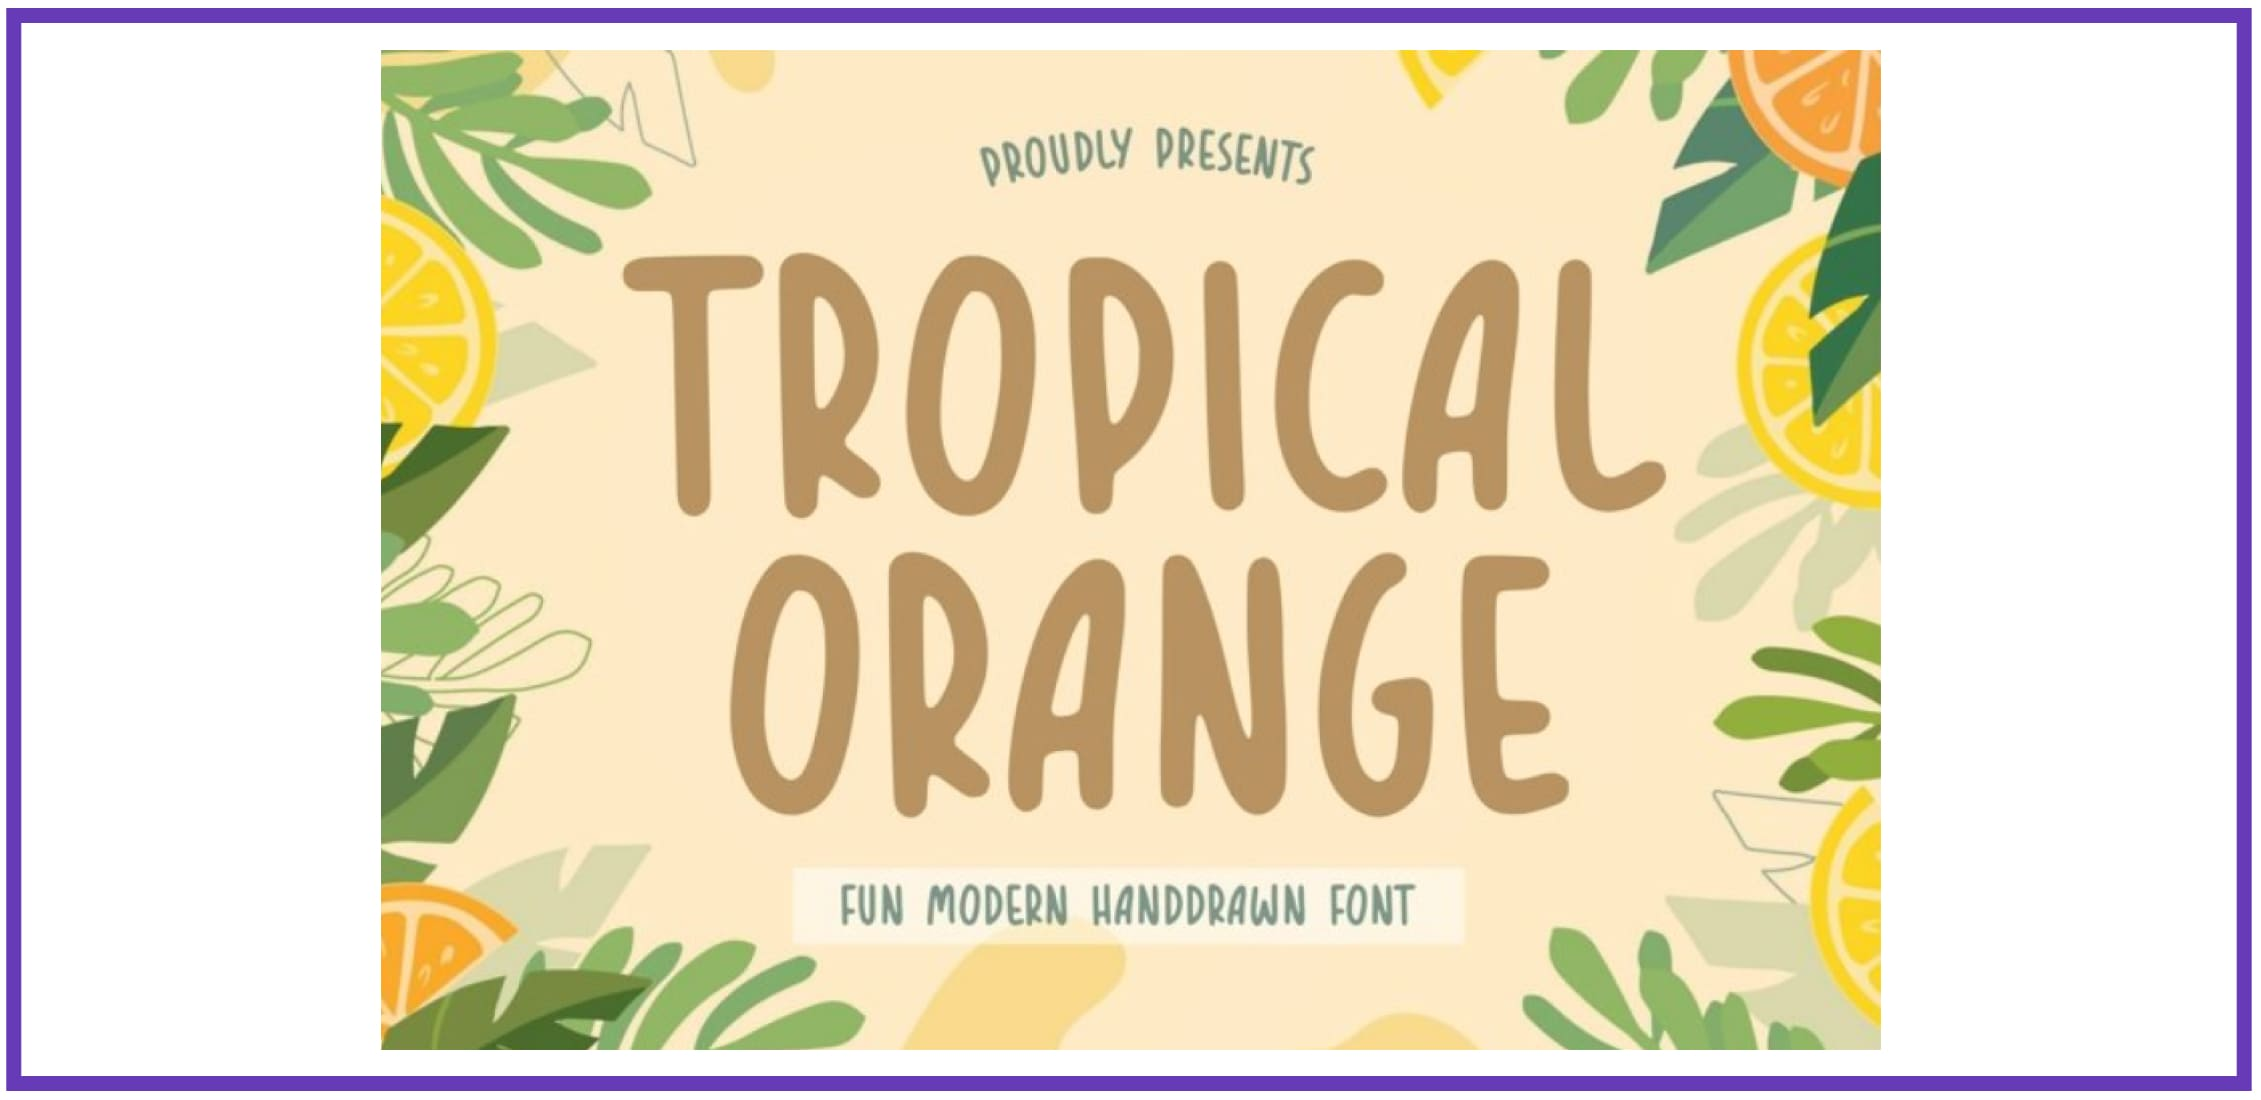 TROPICAL ORANGE. Tropical Font.